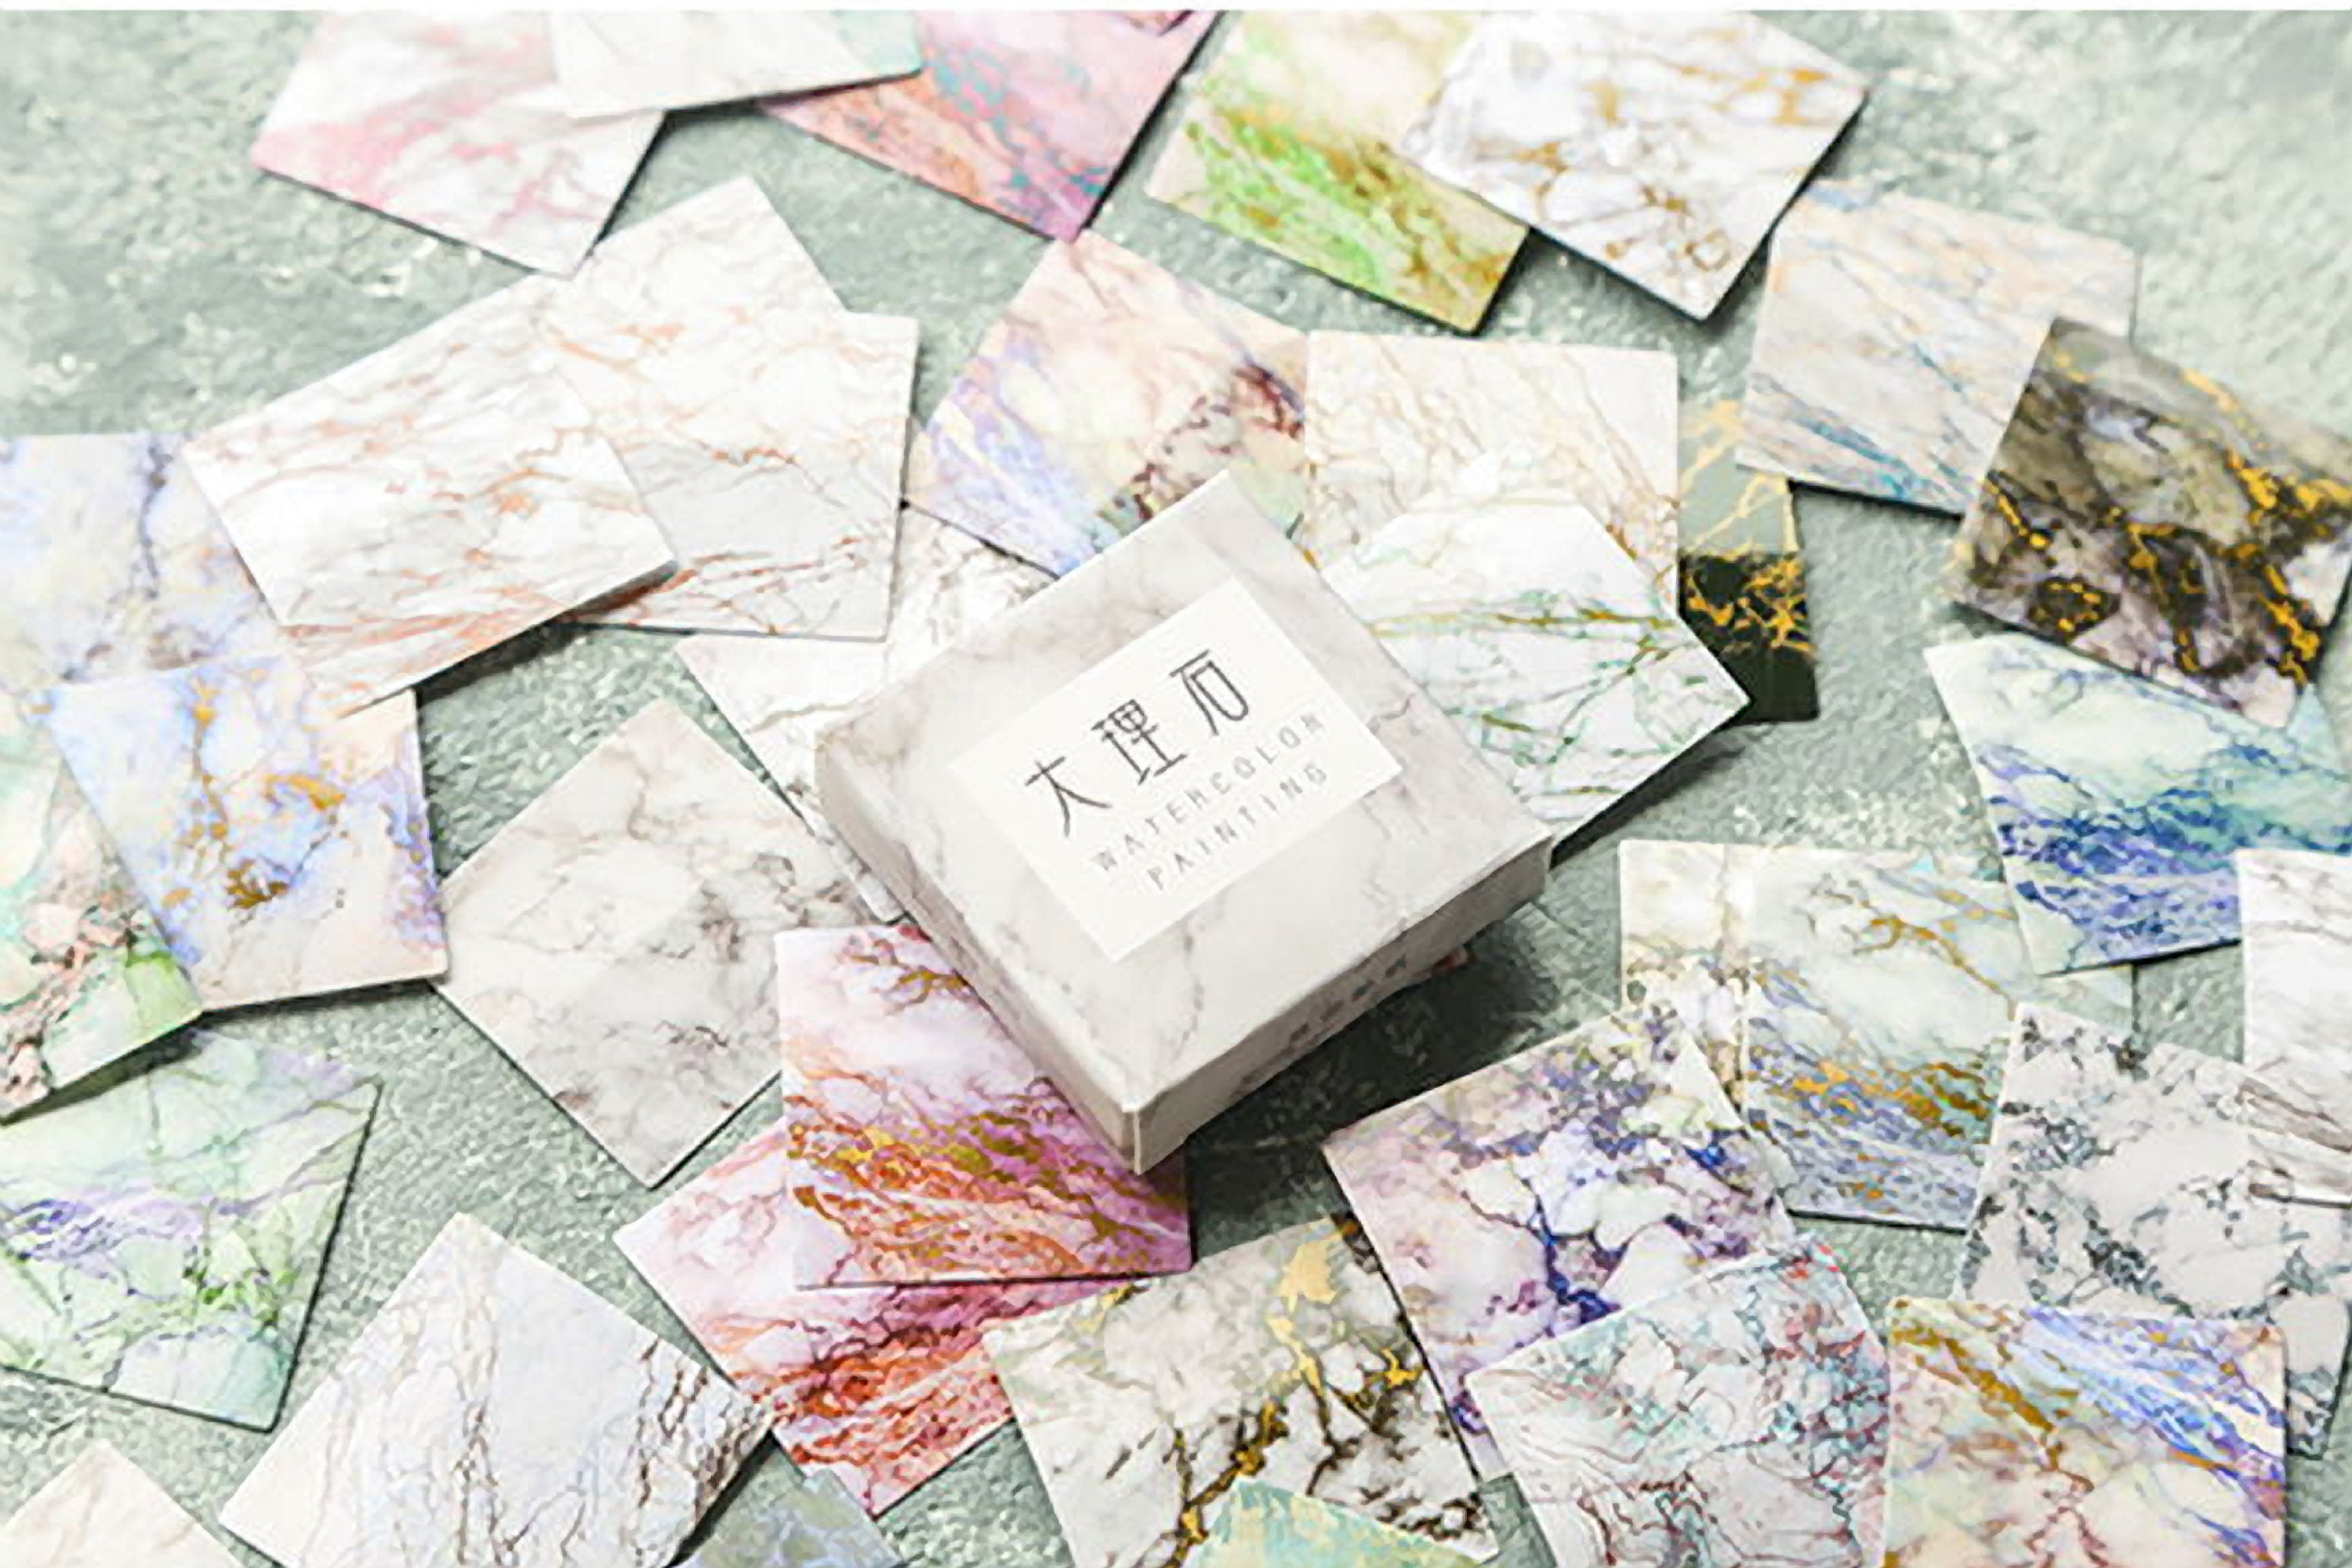 Premium Die-Cut Stickers Color Watercolor Painting Marble Block Frames - The Stationery Life!